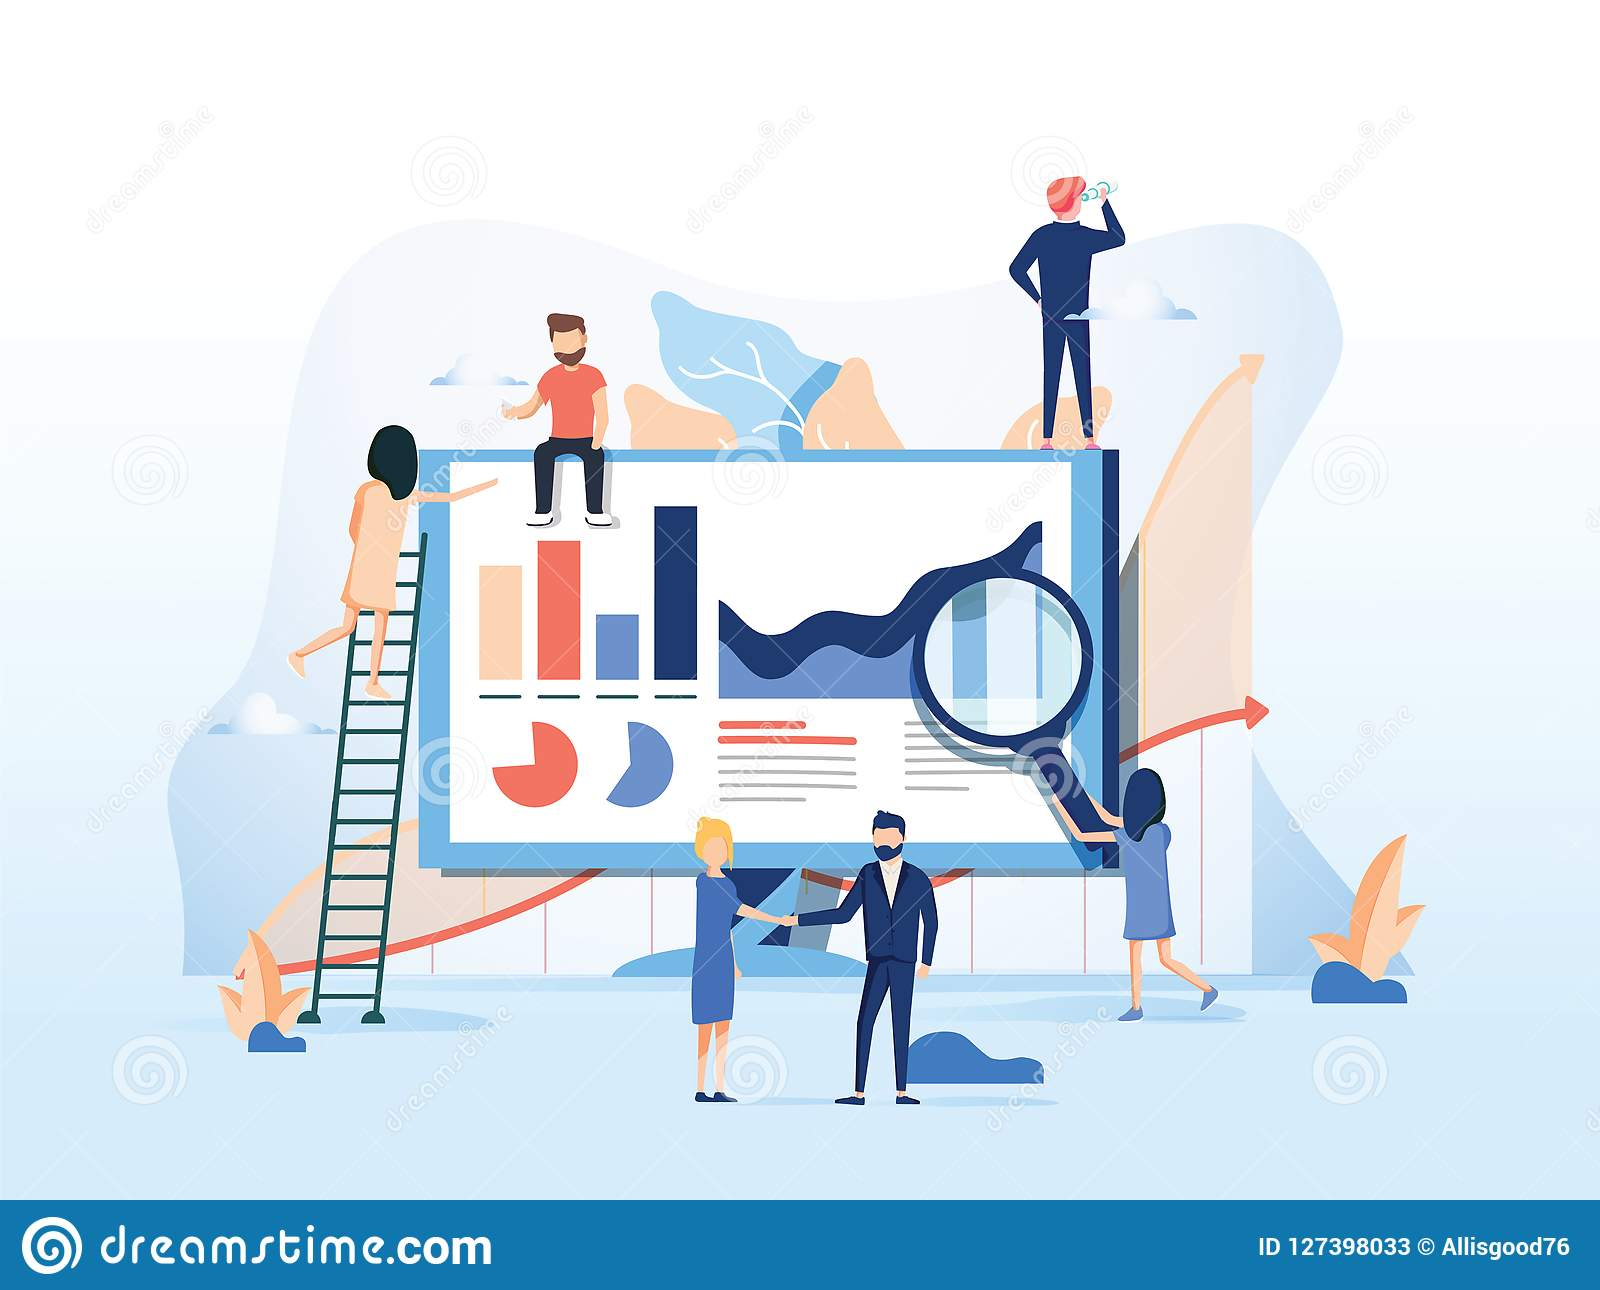 Vector illustration. Creative teamwork. People are building a business project on the Internet. The monitor screen